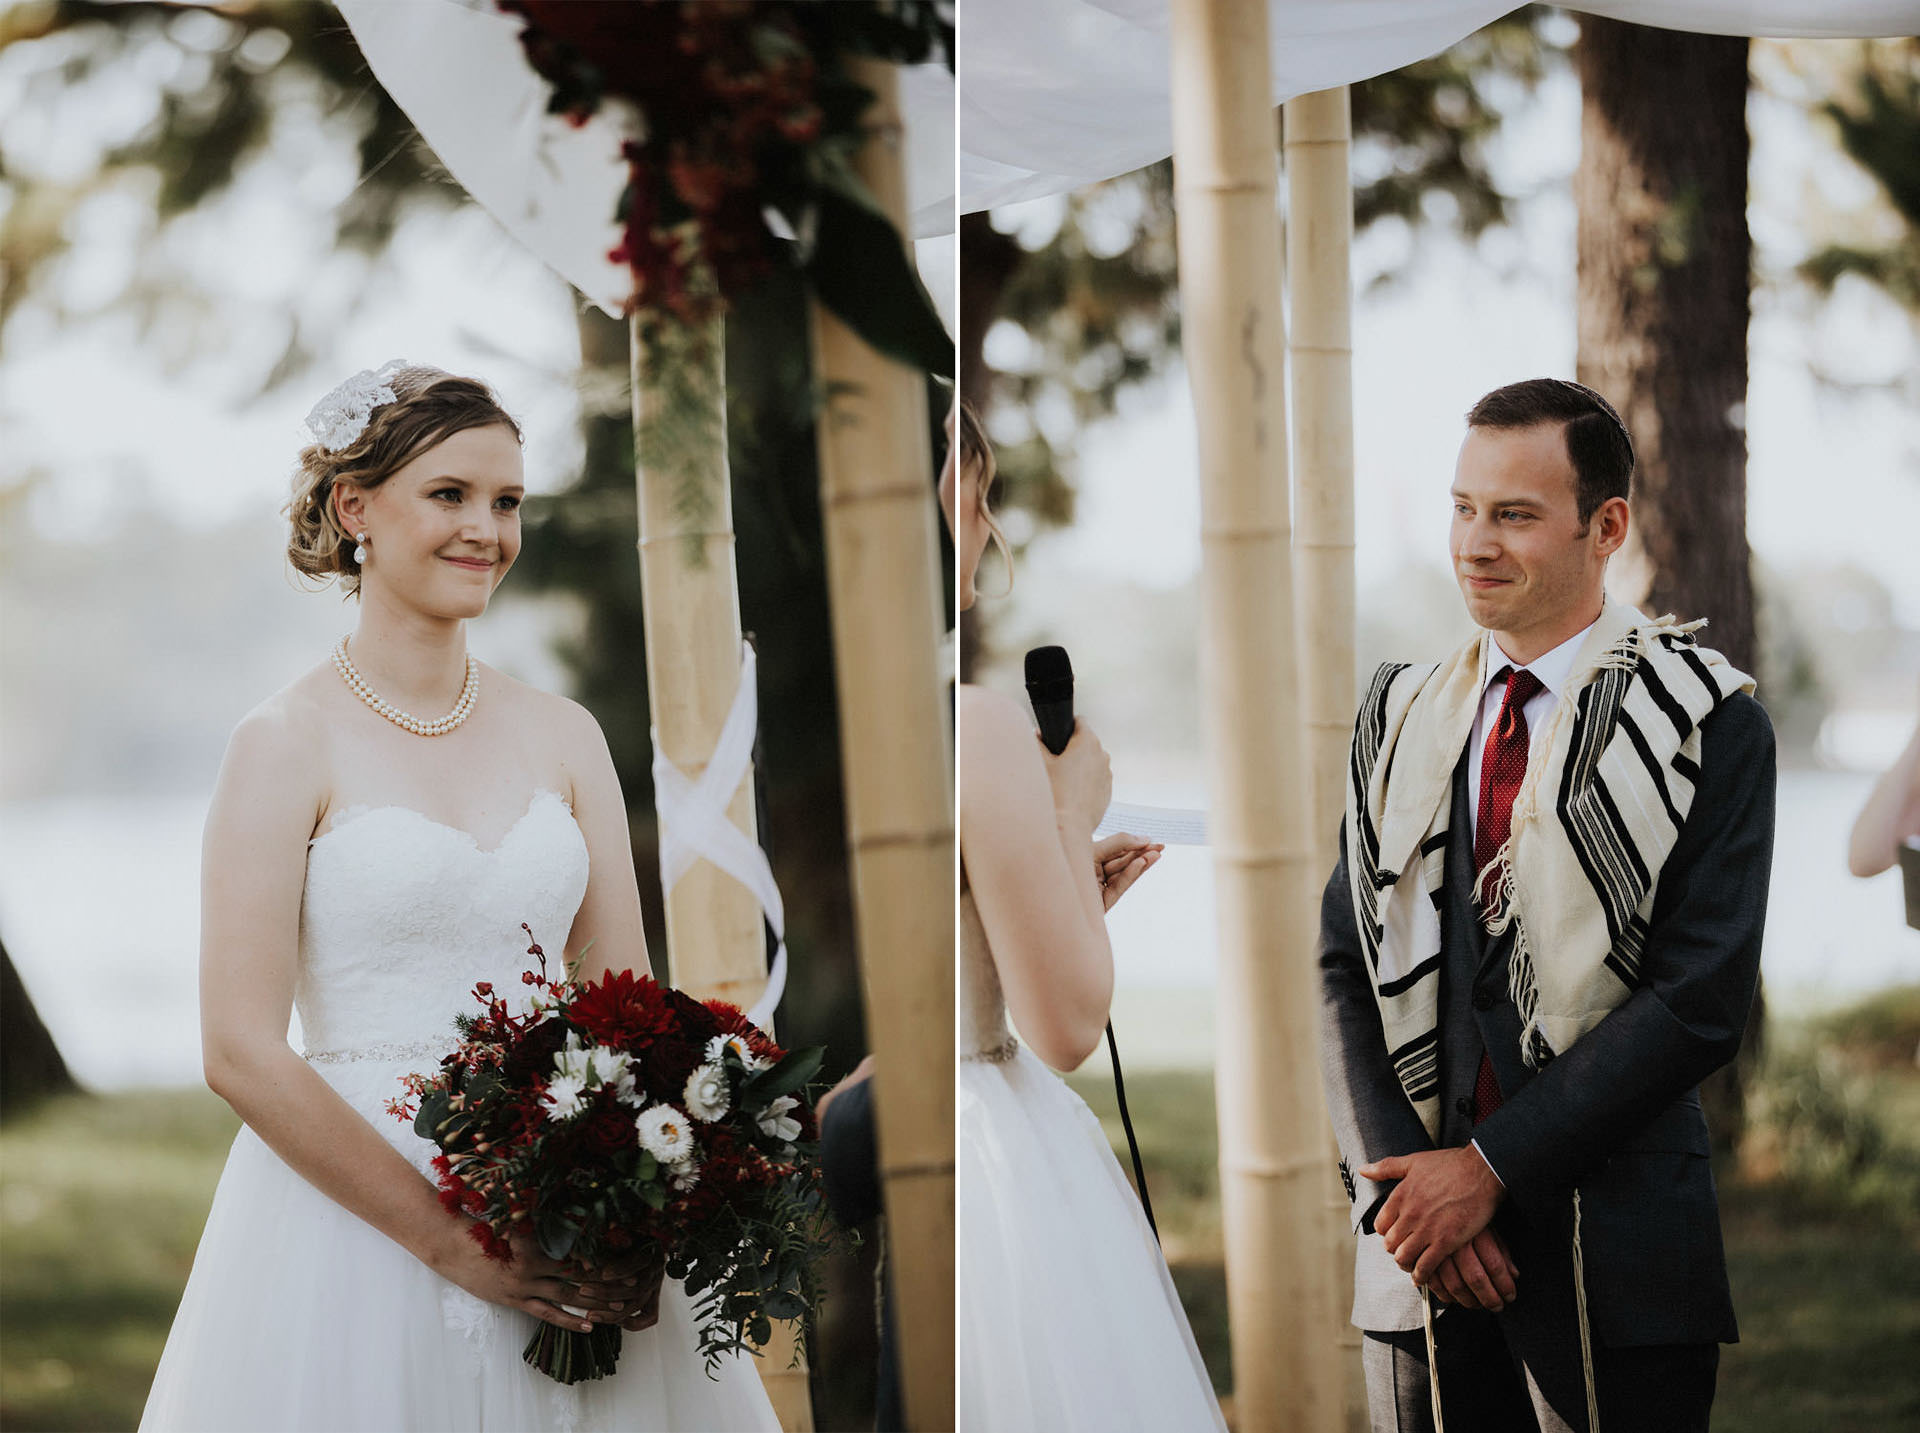 small-intimate-canberra-wedding_044(0376)2.jpg